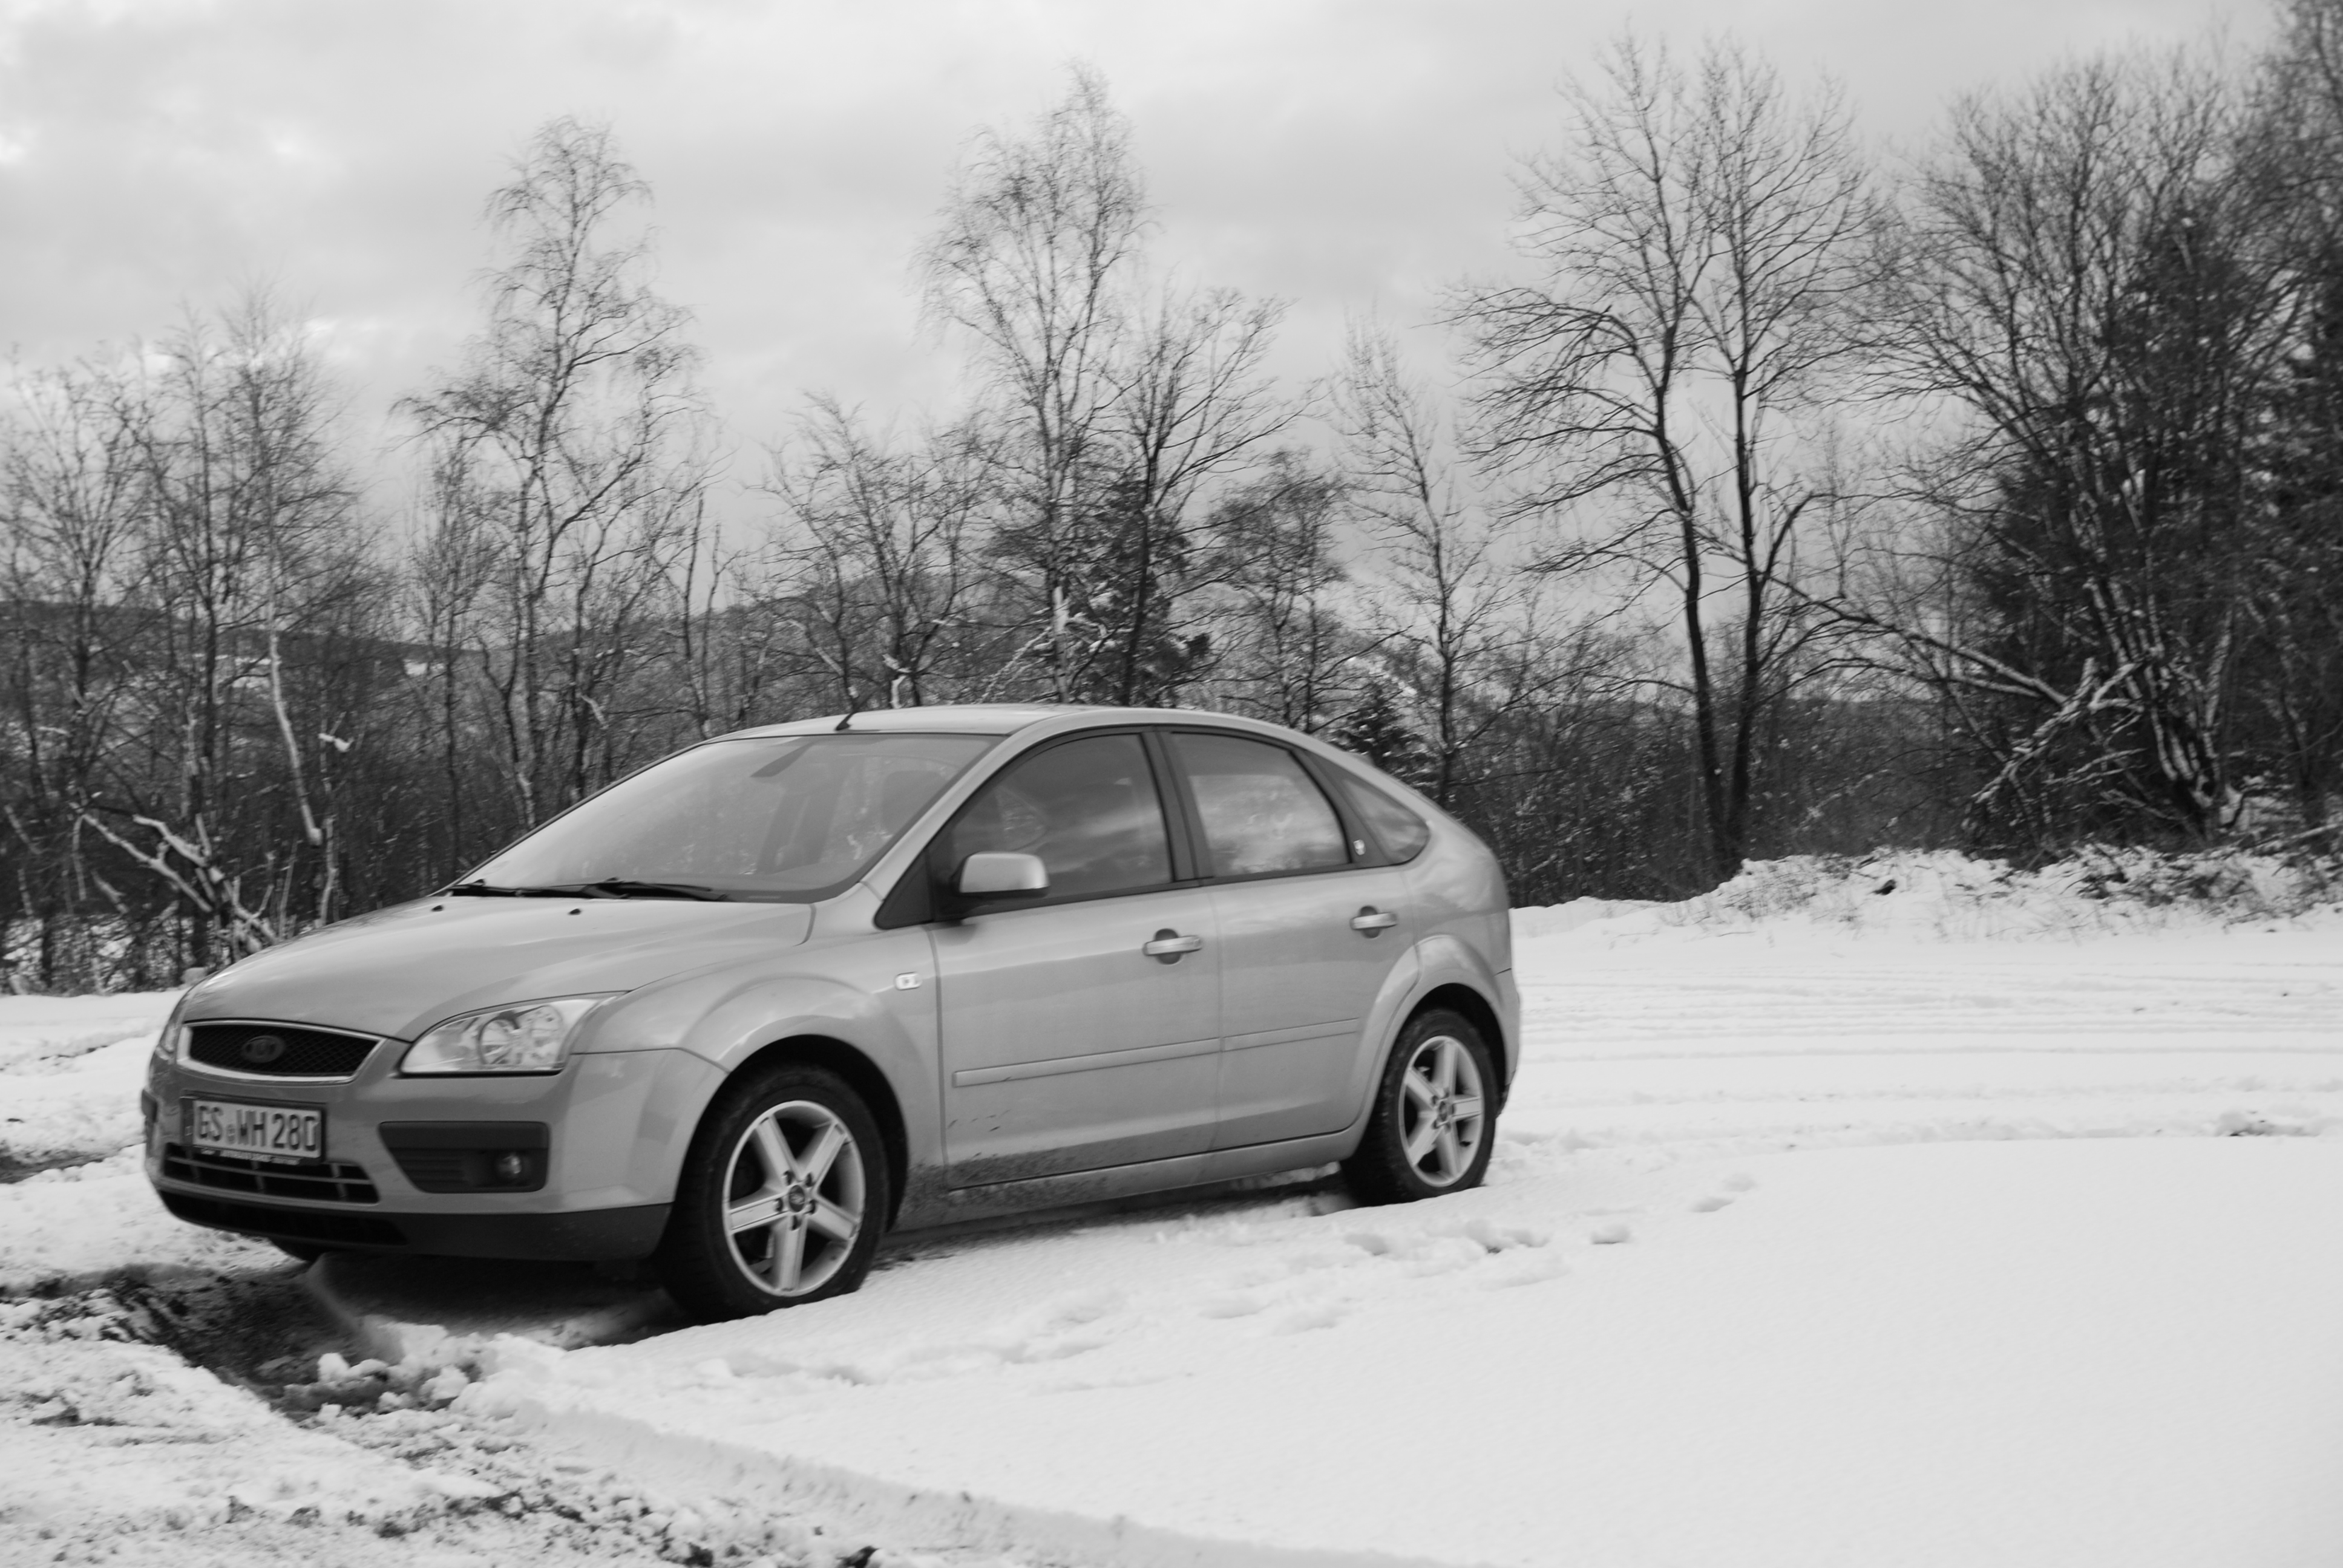 ford focus mk2 in snow. Black Bedroom Furniture Sets. Home Design Ideas